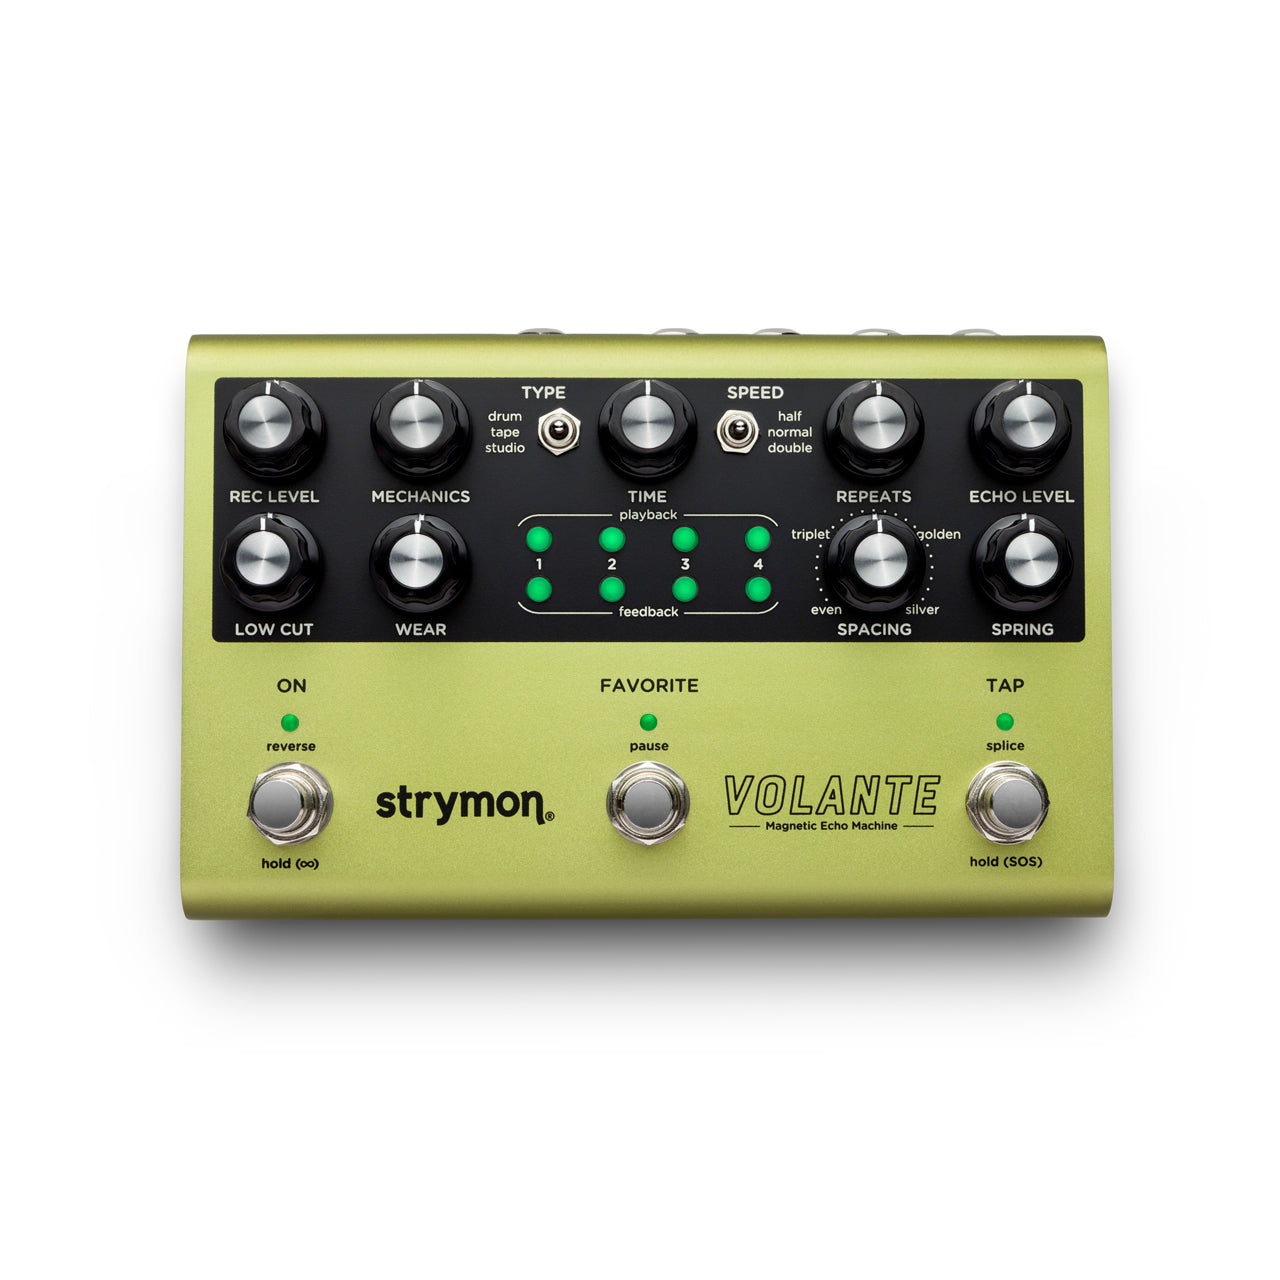 Strymon Volante - Magnetic Echo Machine